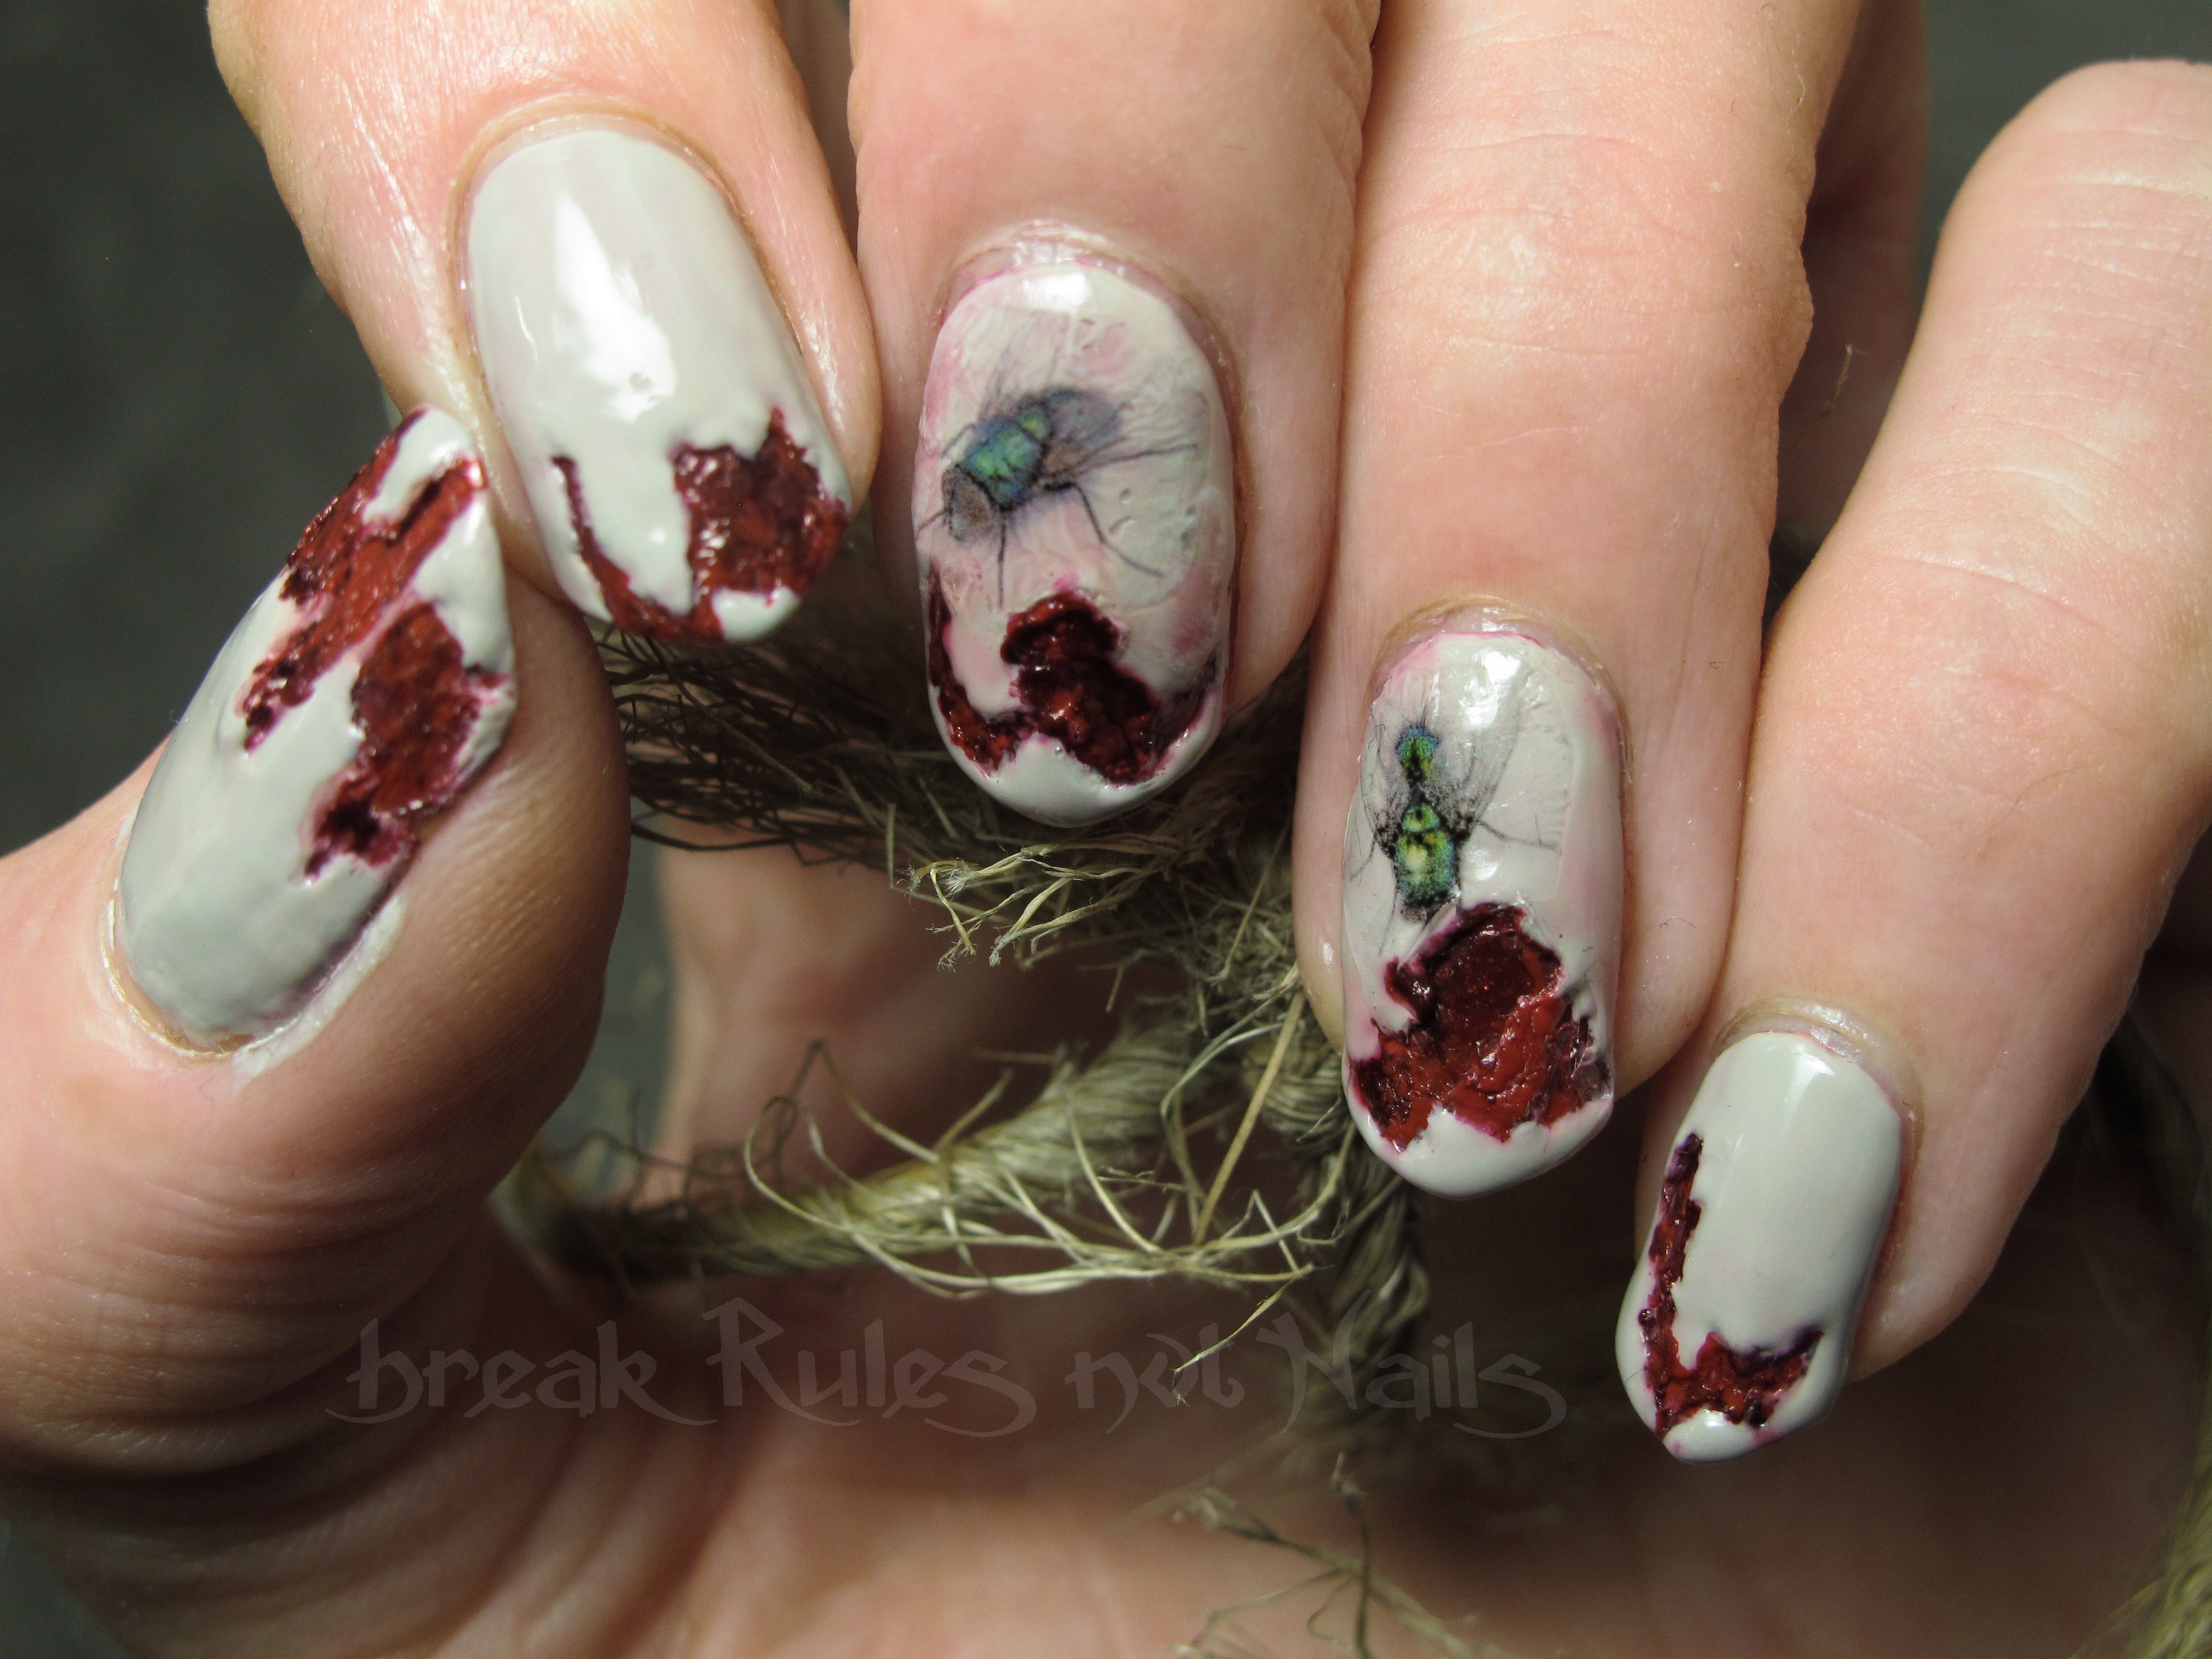 Break rules not nails its all about nail polish colour and gruesome and flies prinsesfo Gallery